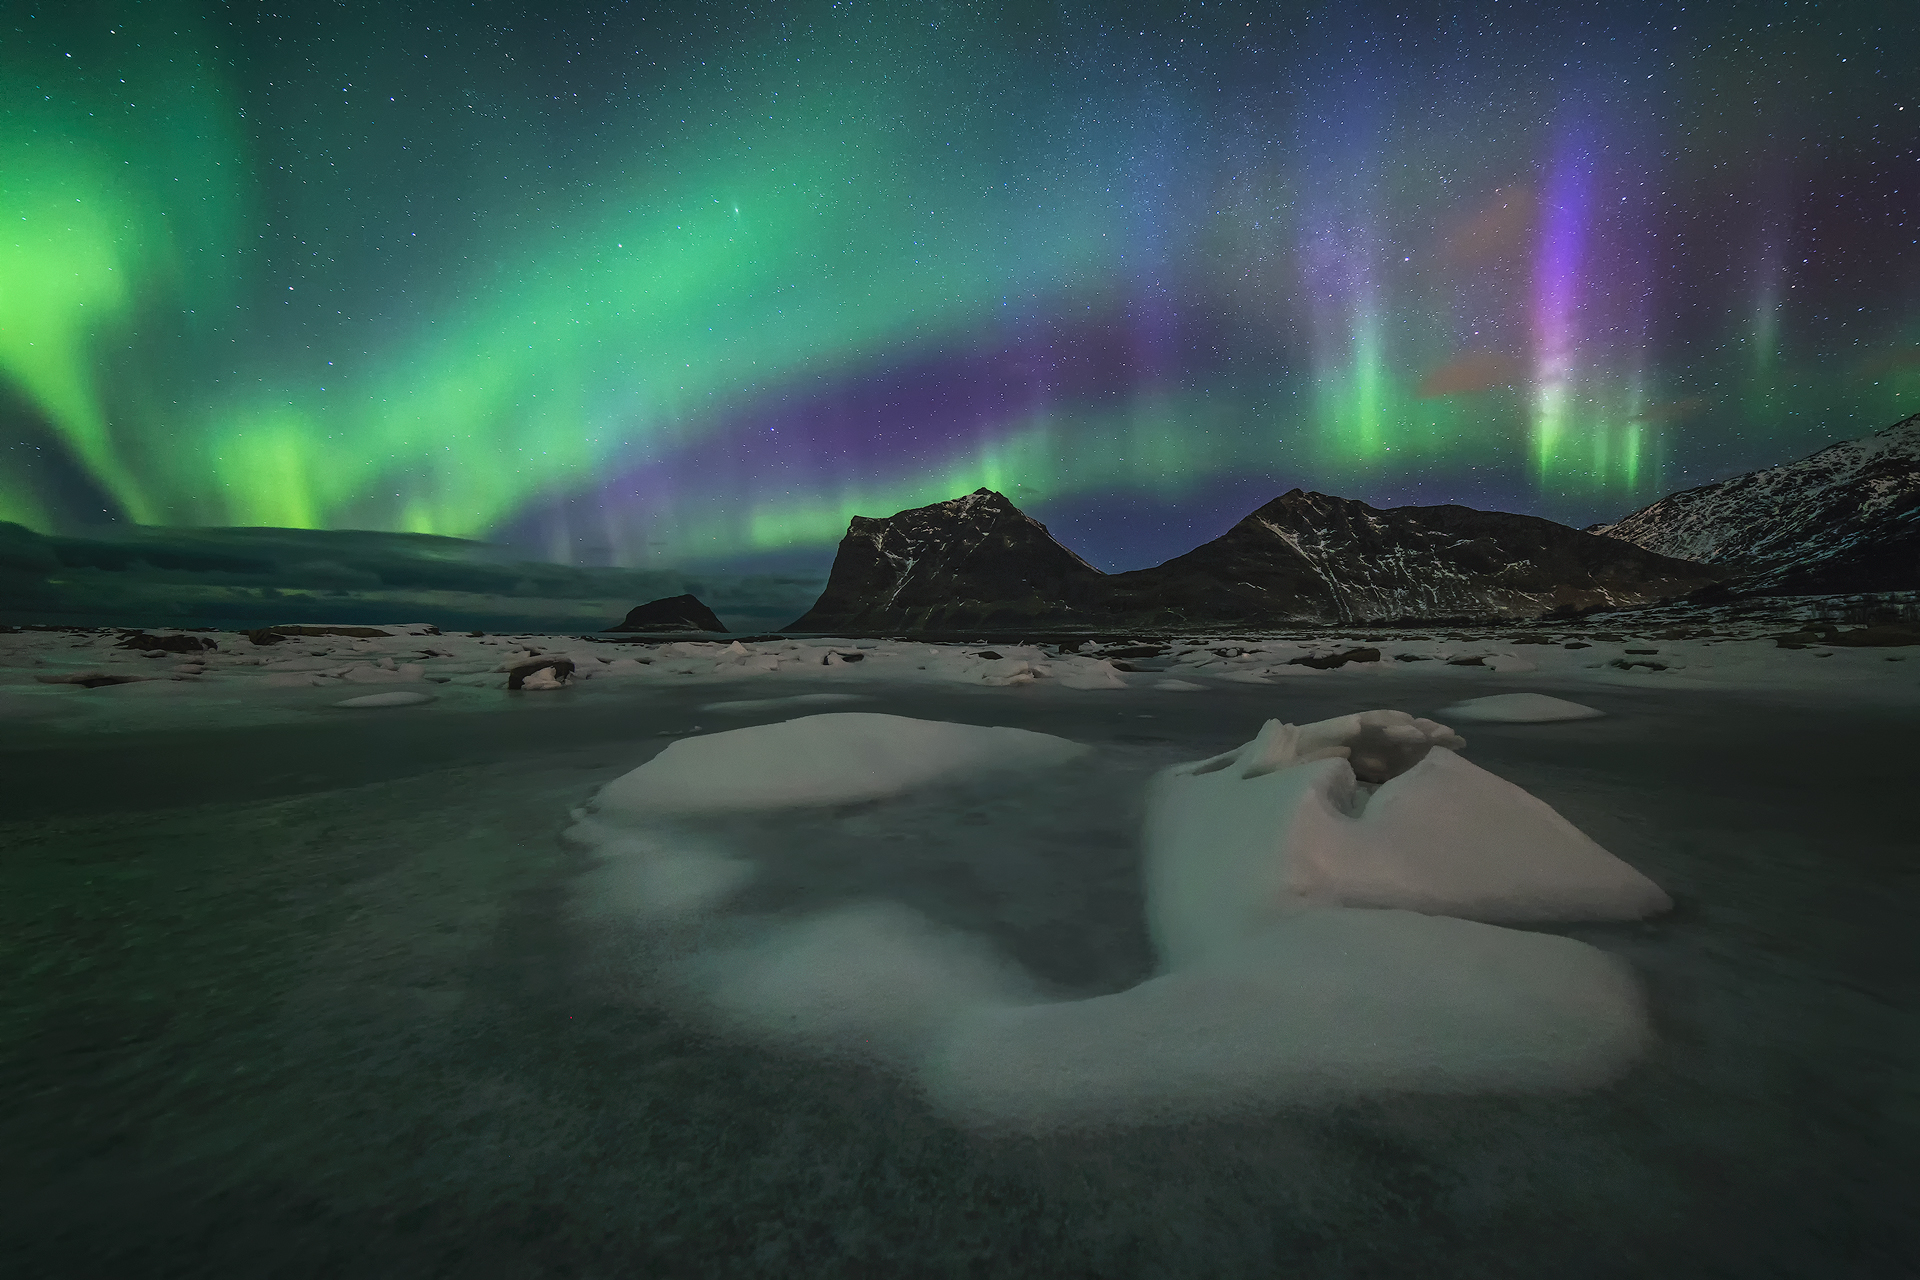 Photographing northern lights -